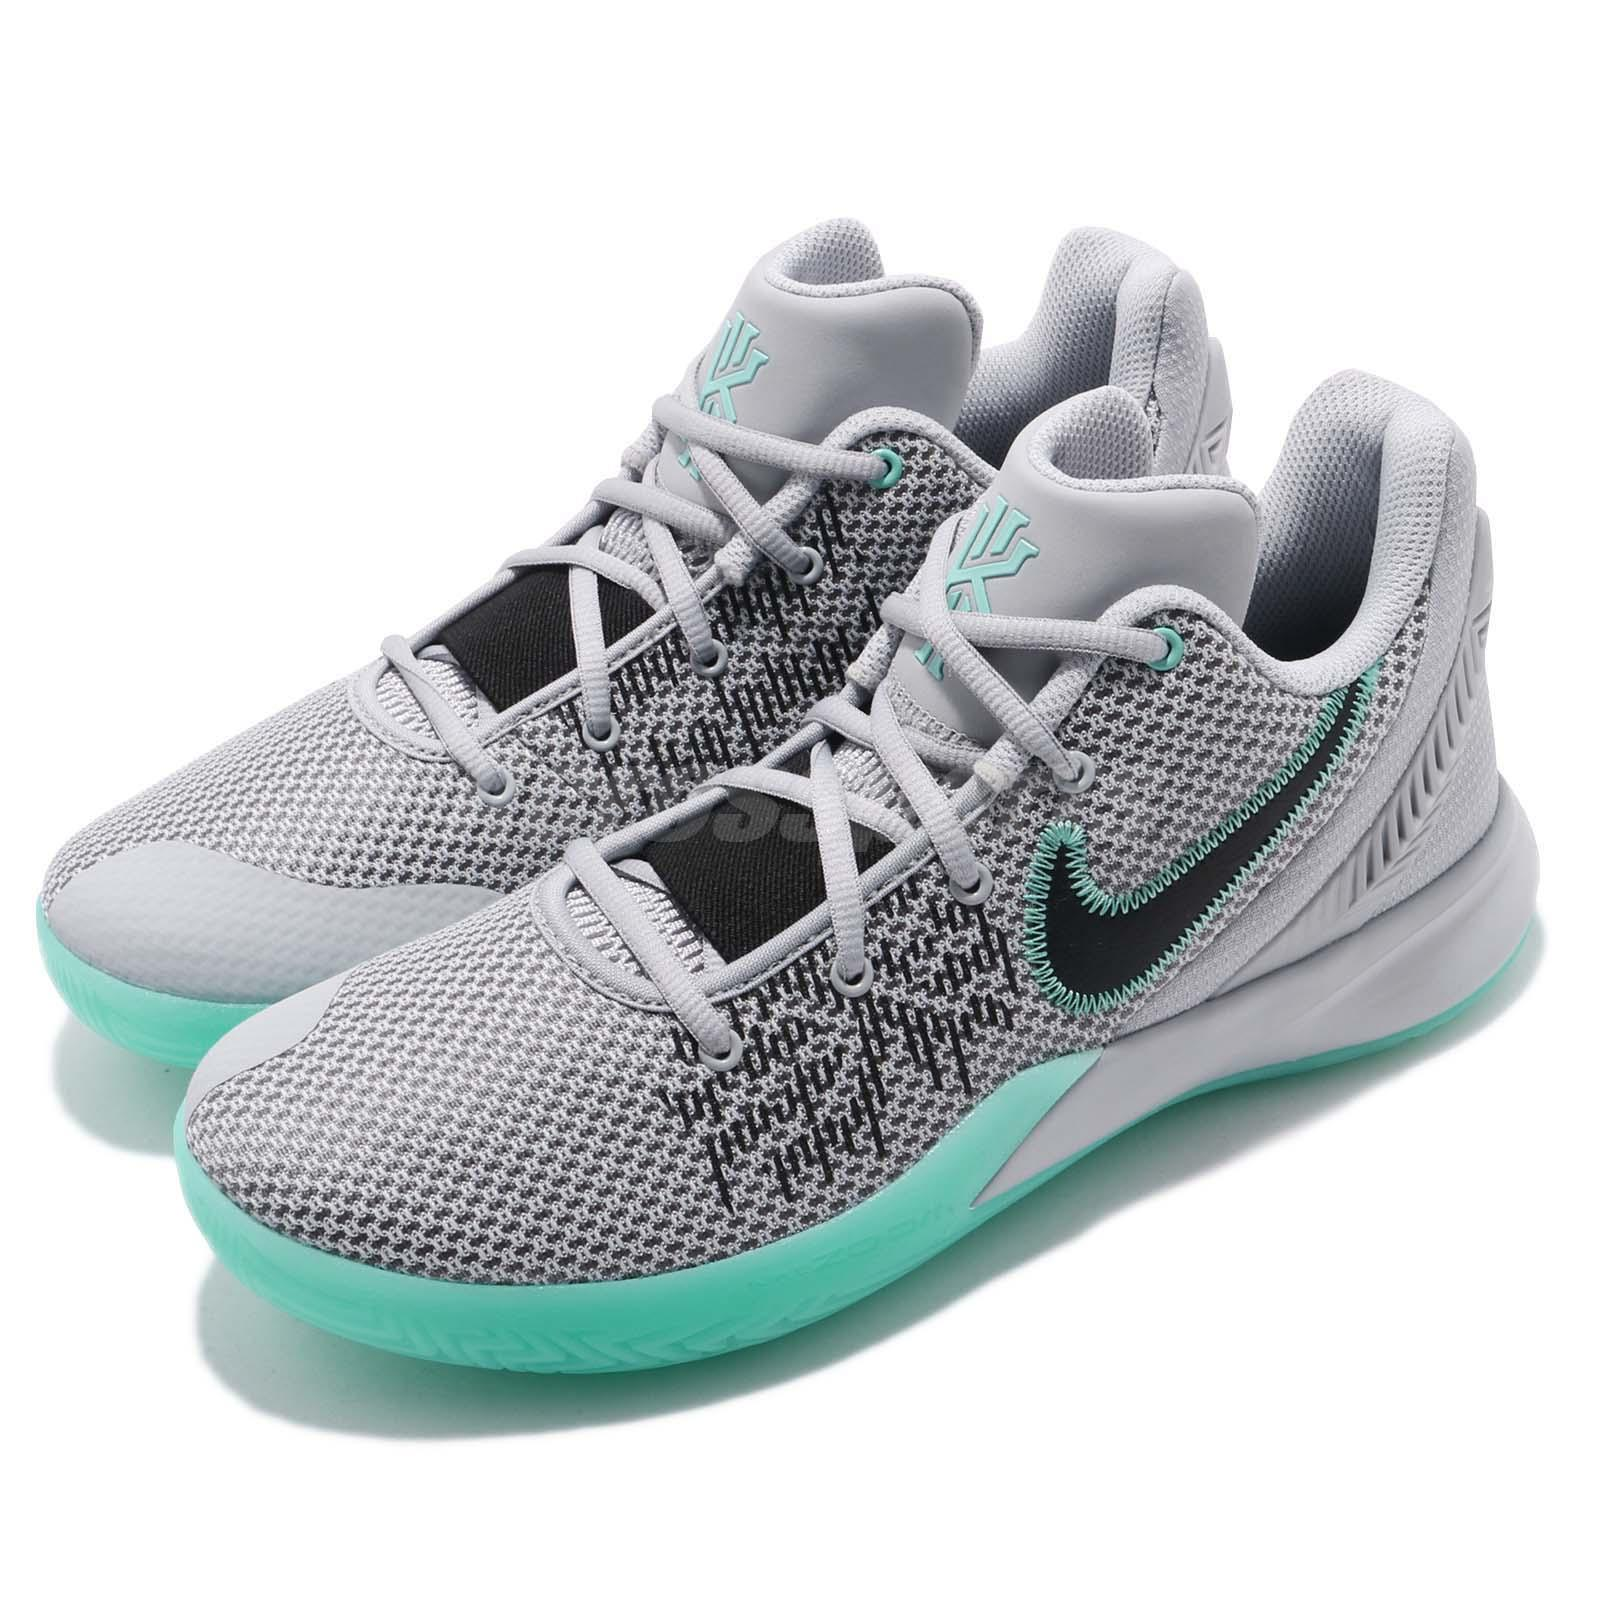 283939dd52035 Details about Nike Kyrie Flytrap II EP 2 Irving Grey Black Men Basketball  Shoes AO4438-003